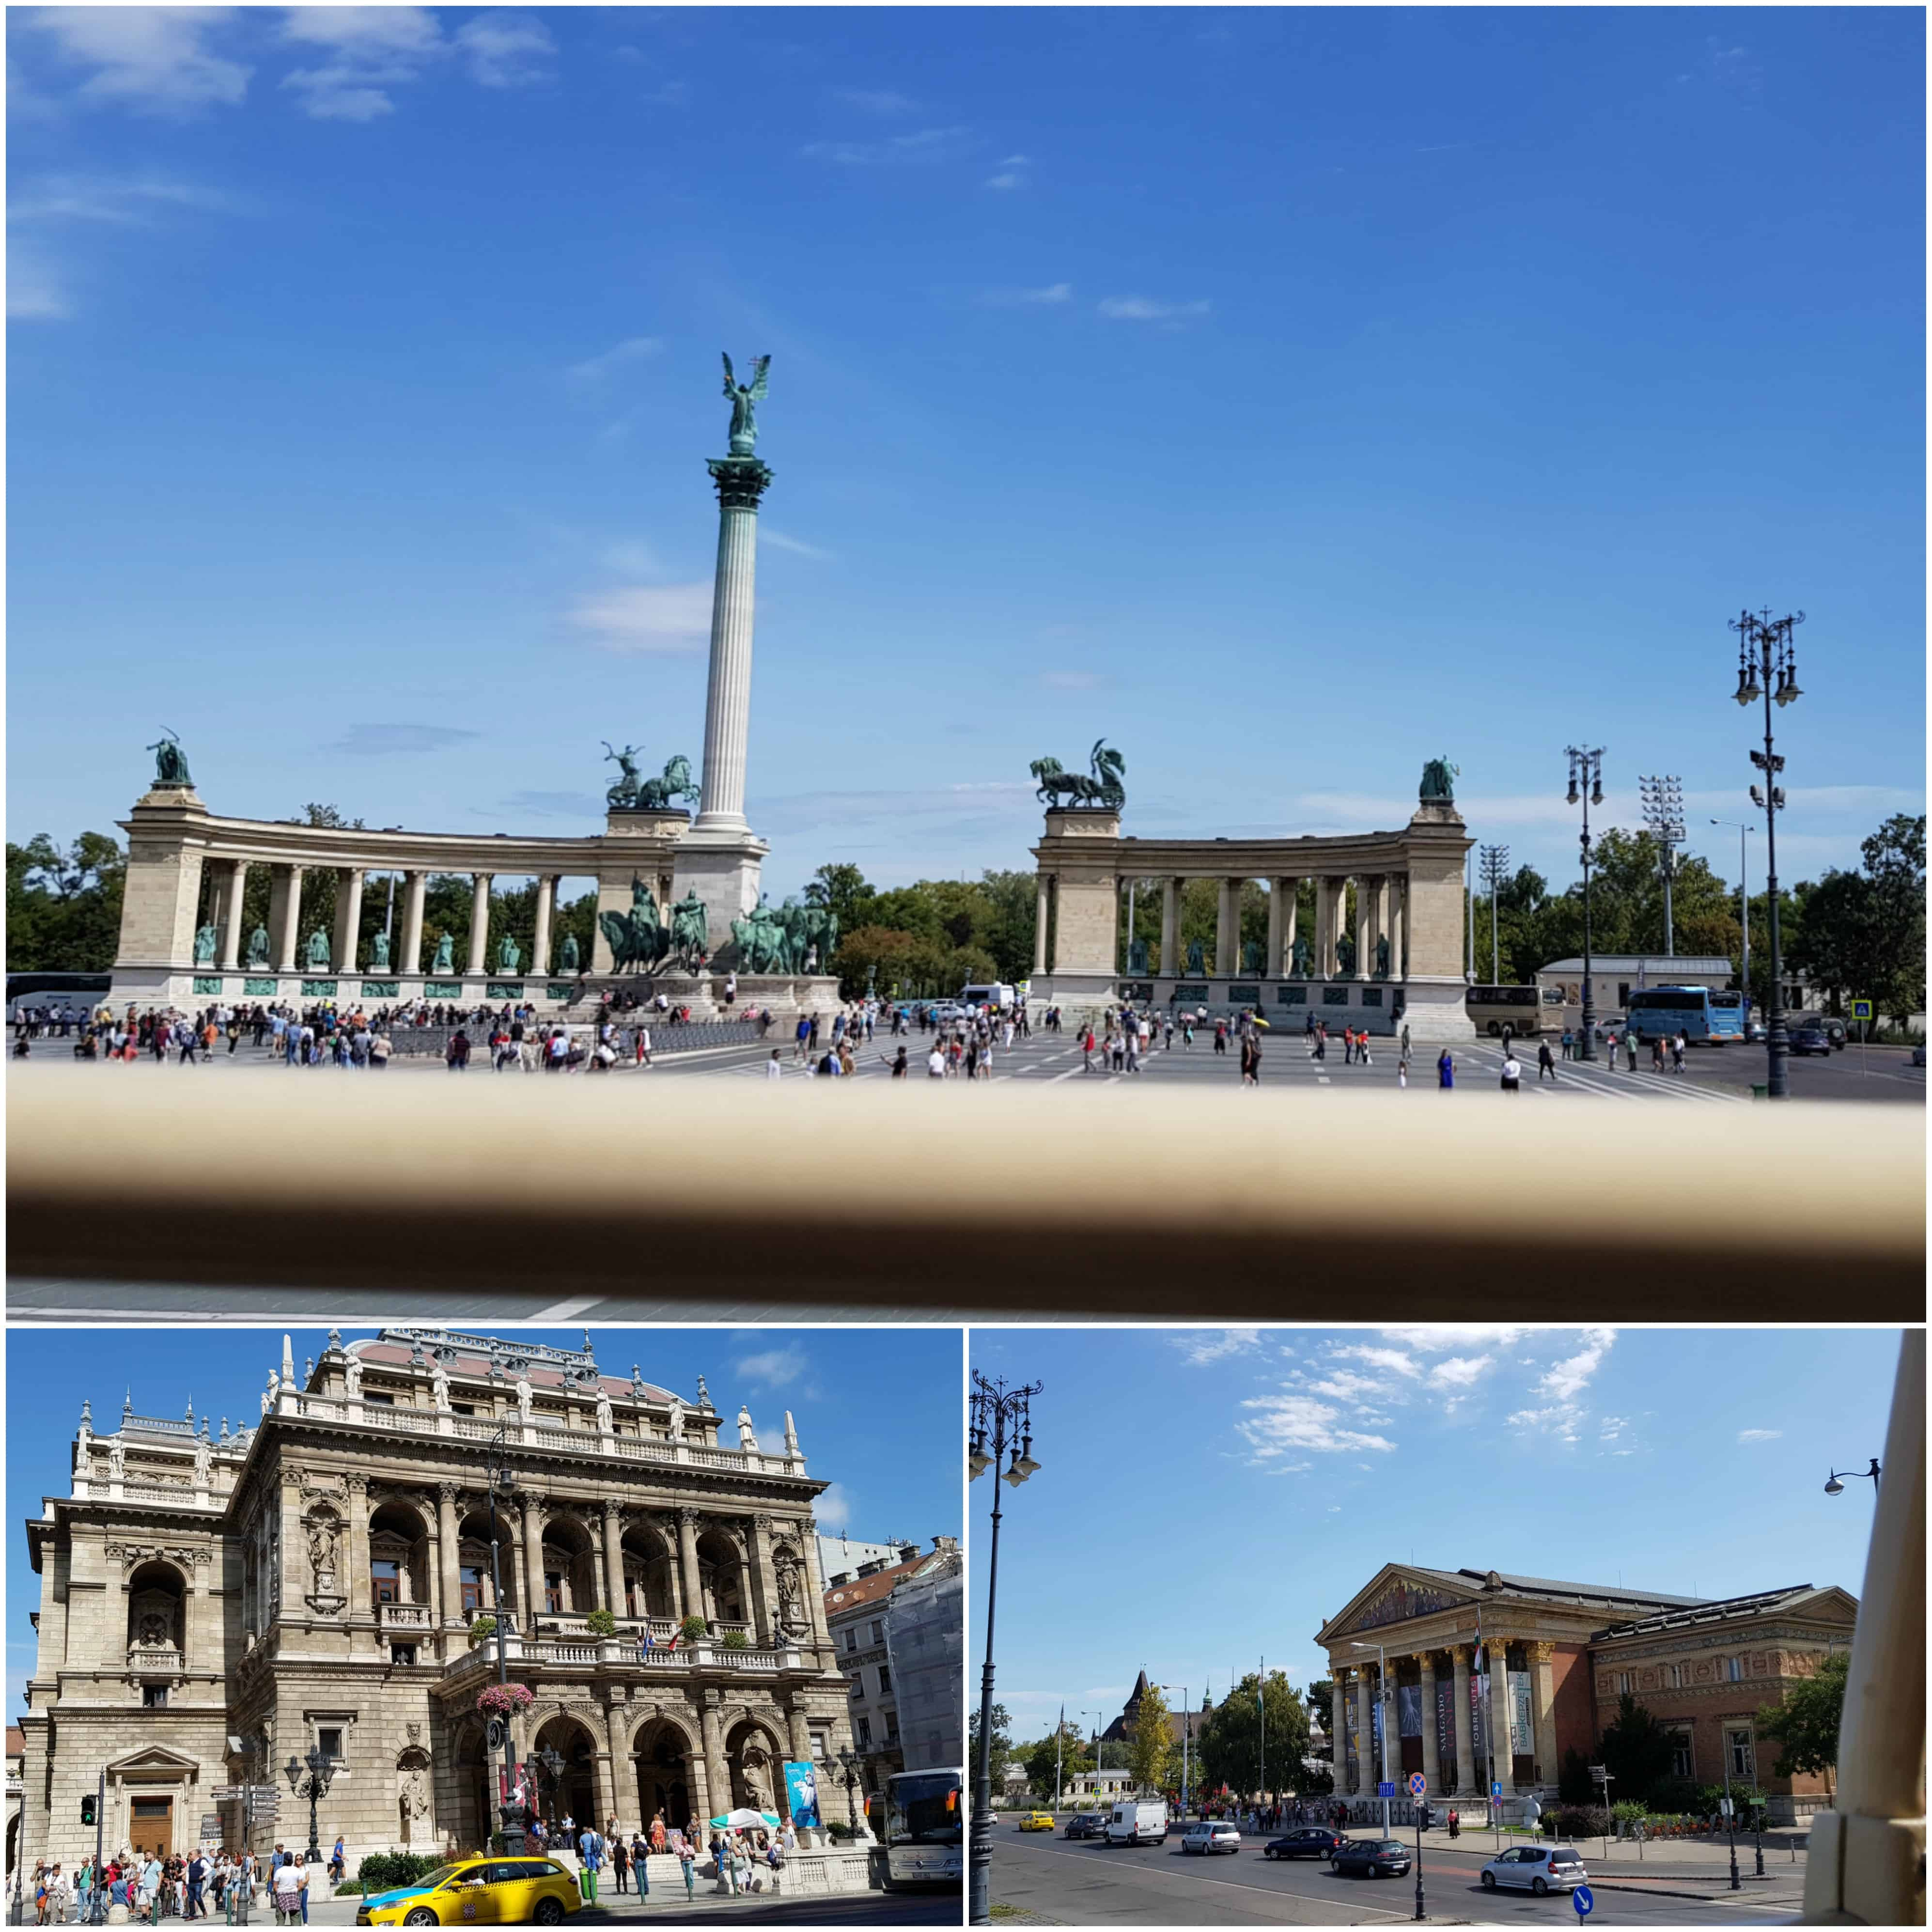 Budapest sites opera house and hero's square